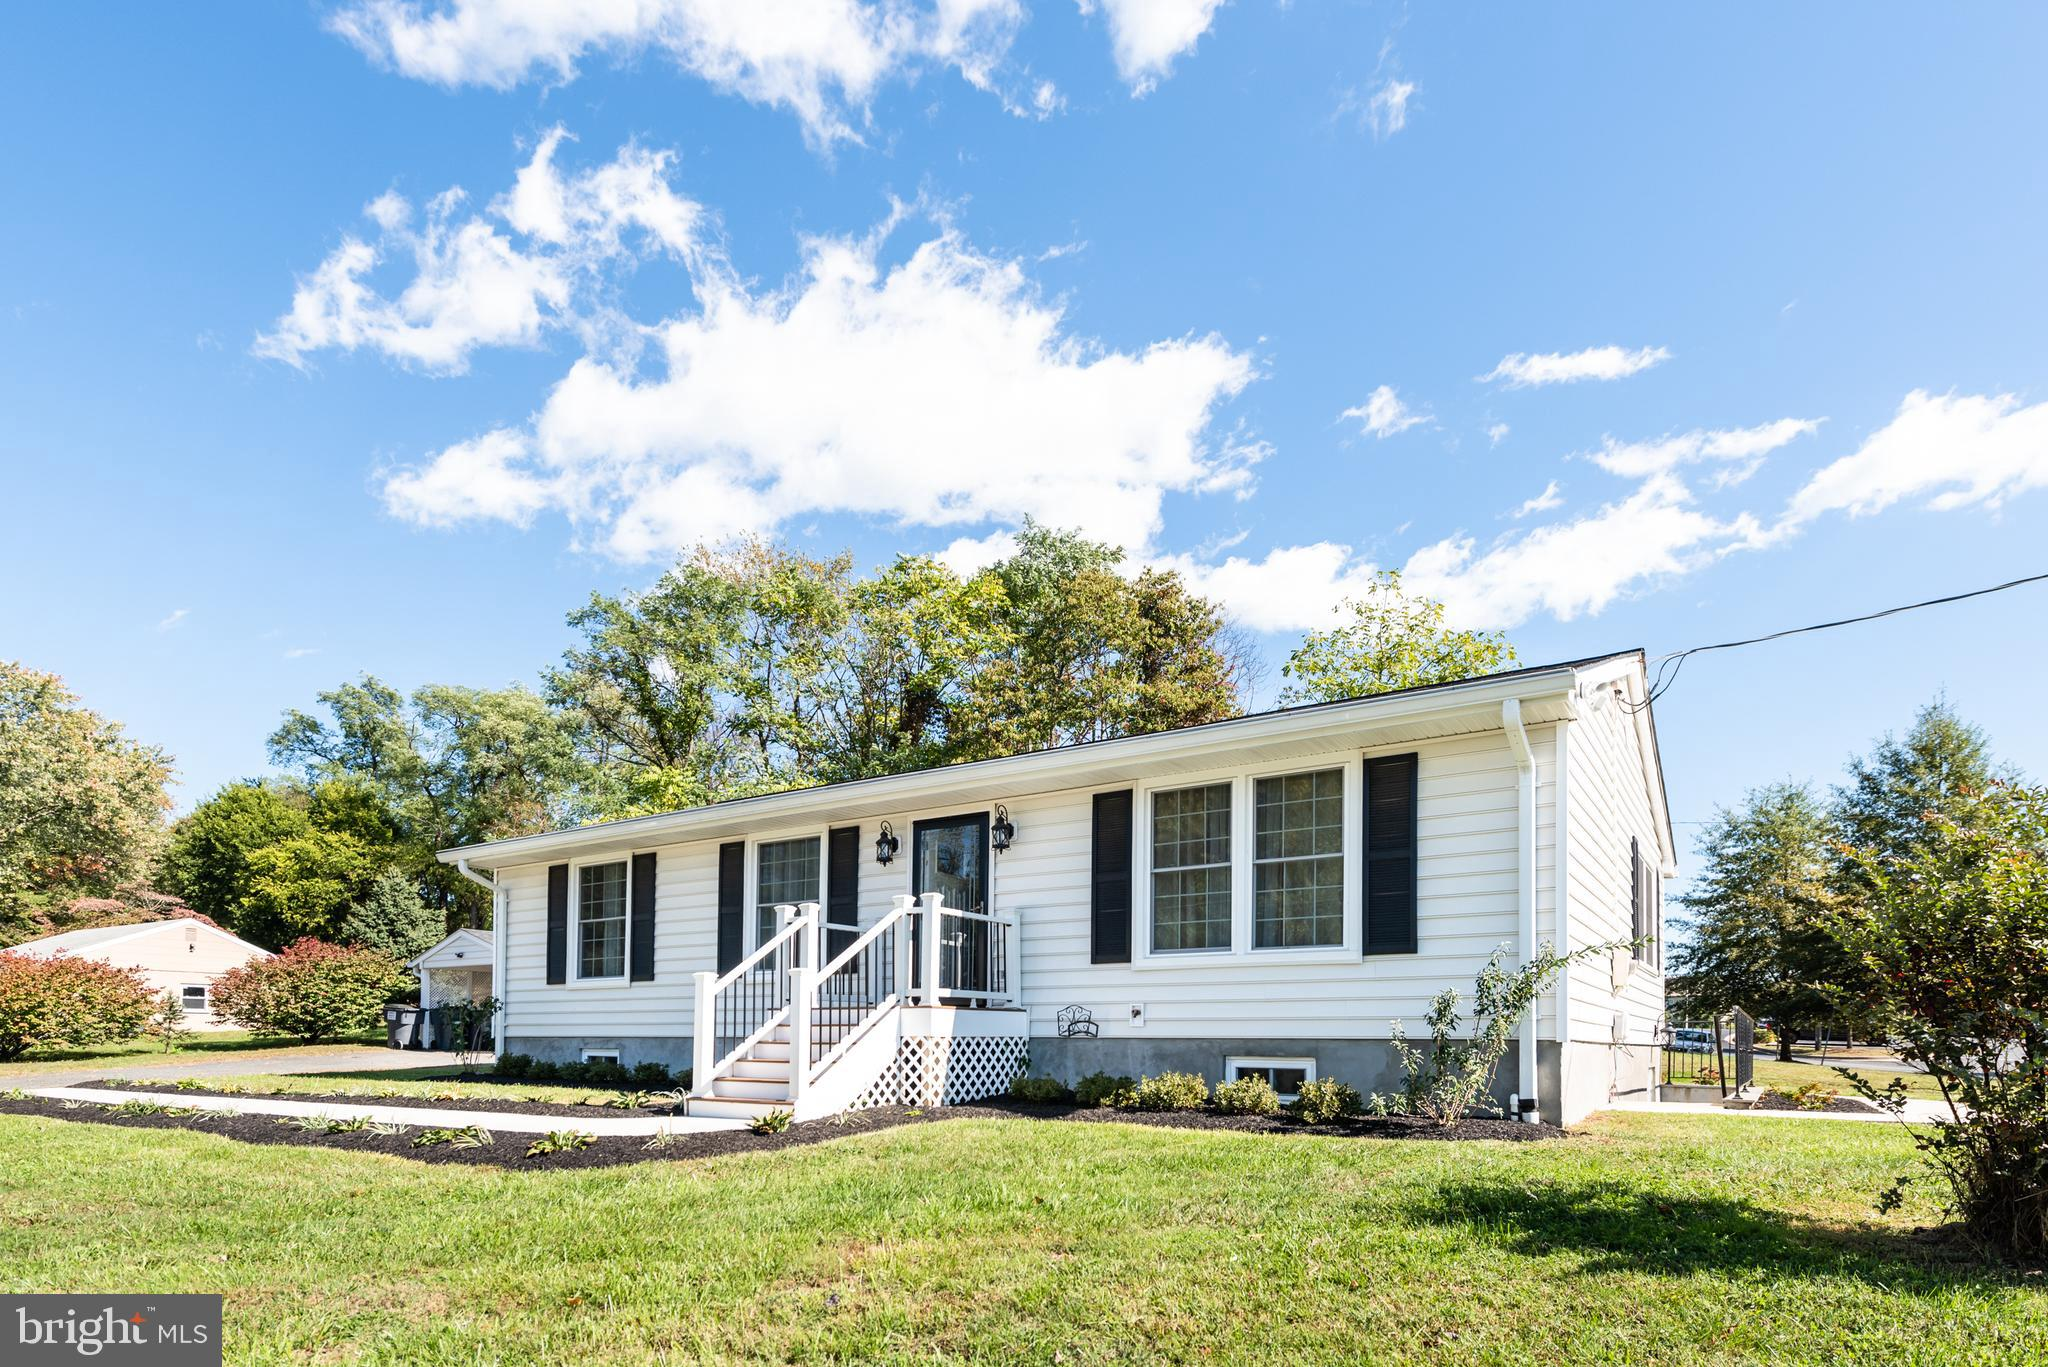 Cover to cover, this charming home has been renovated and maintained inside and out with a new roof,